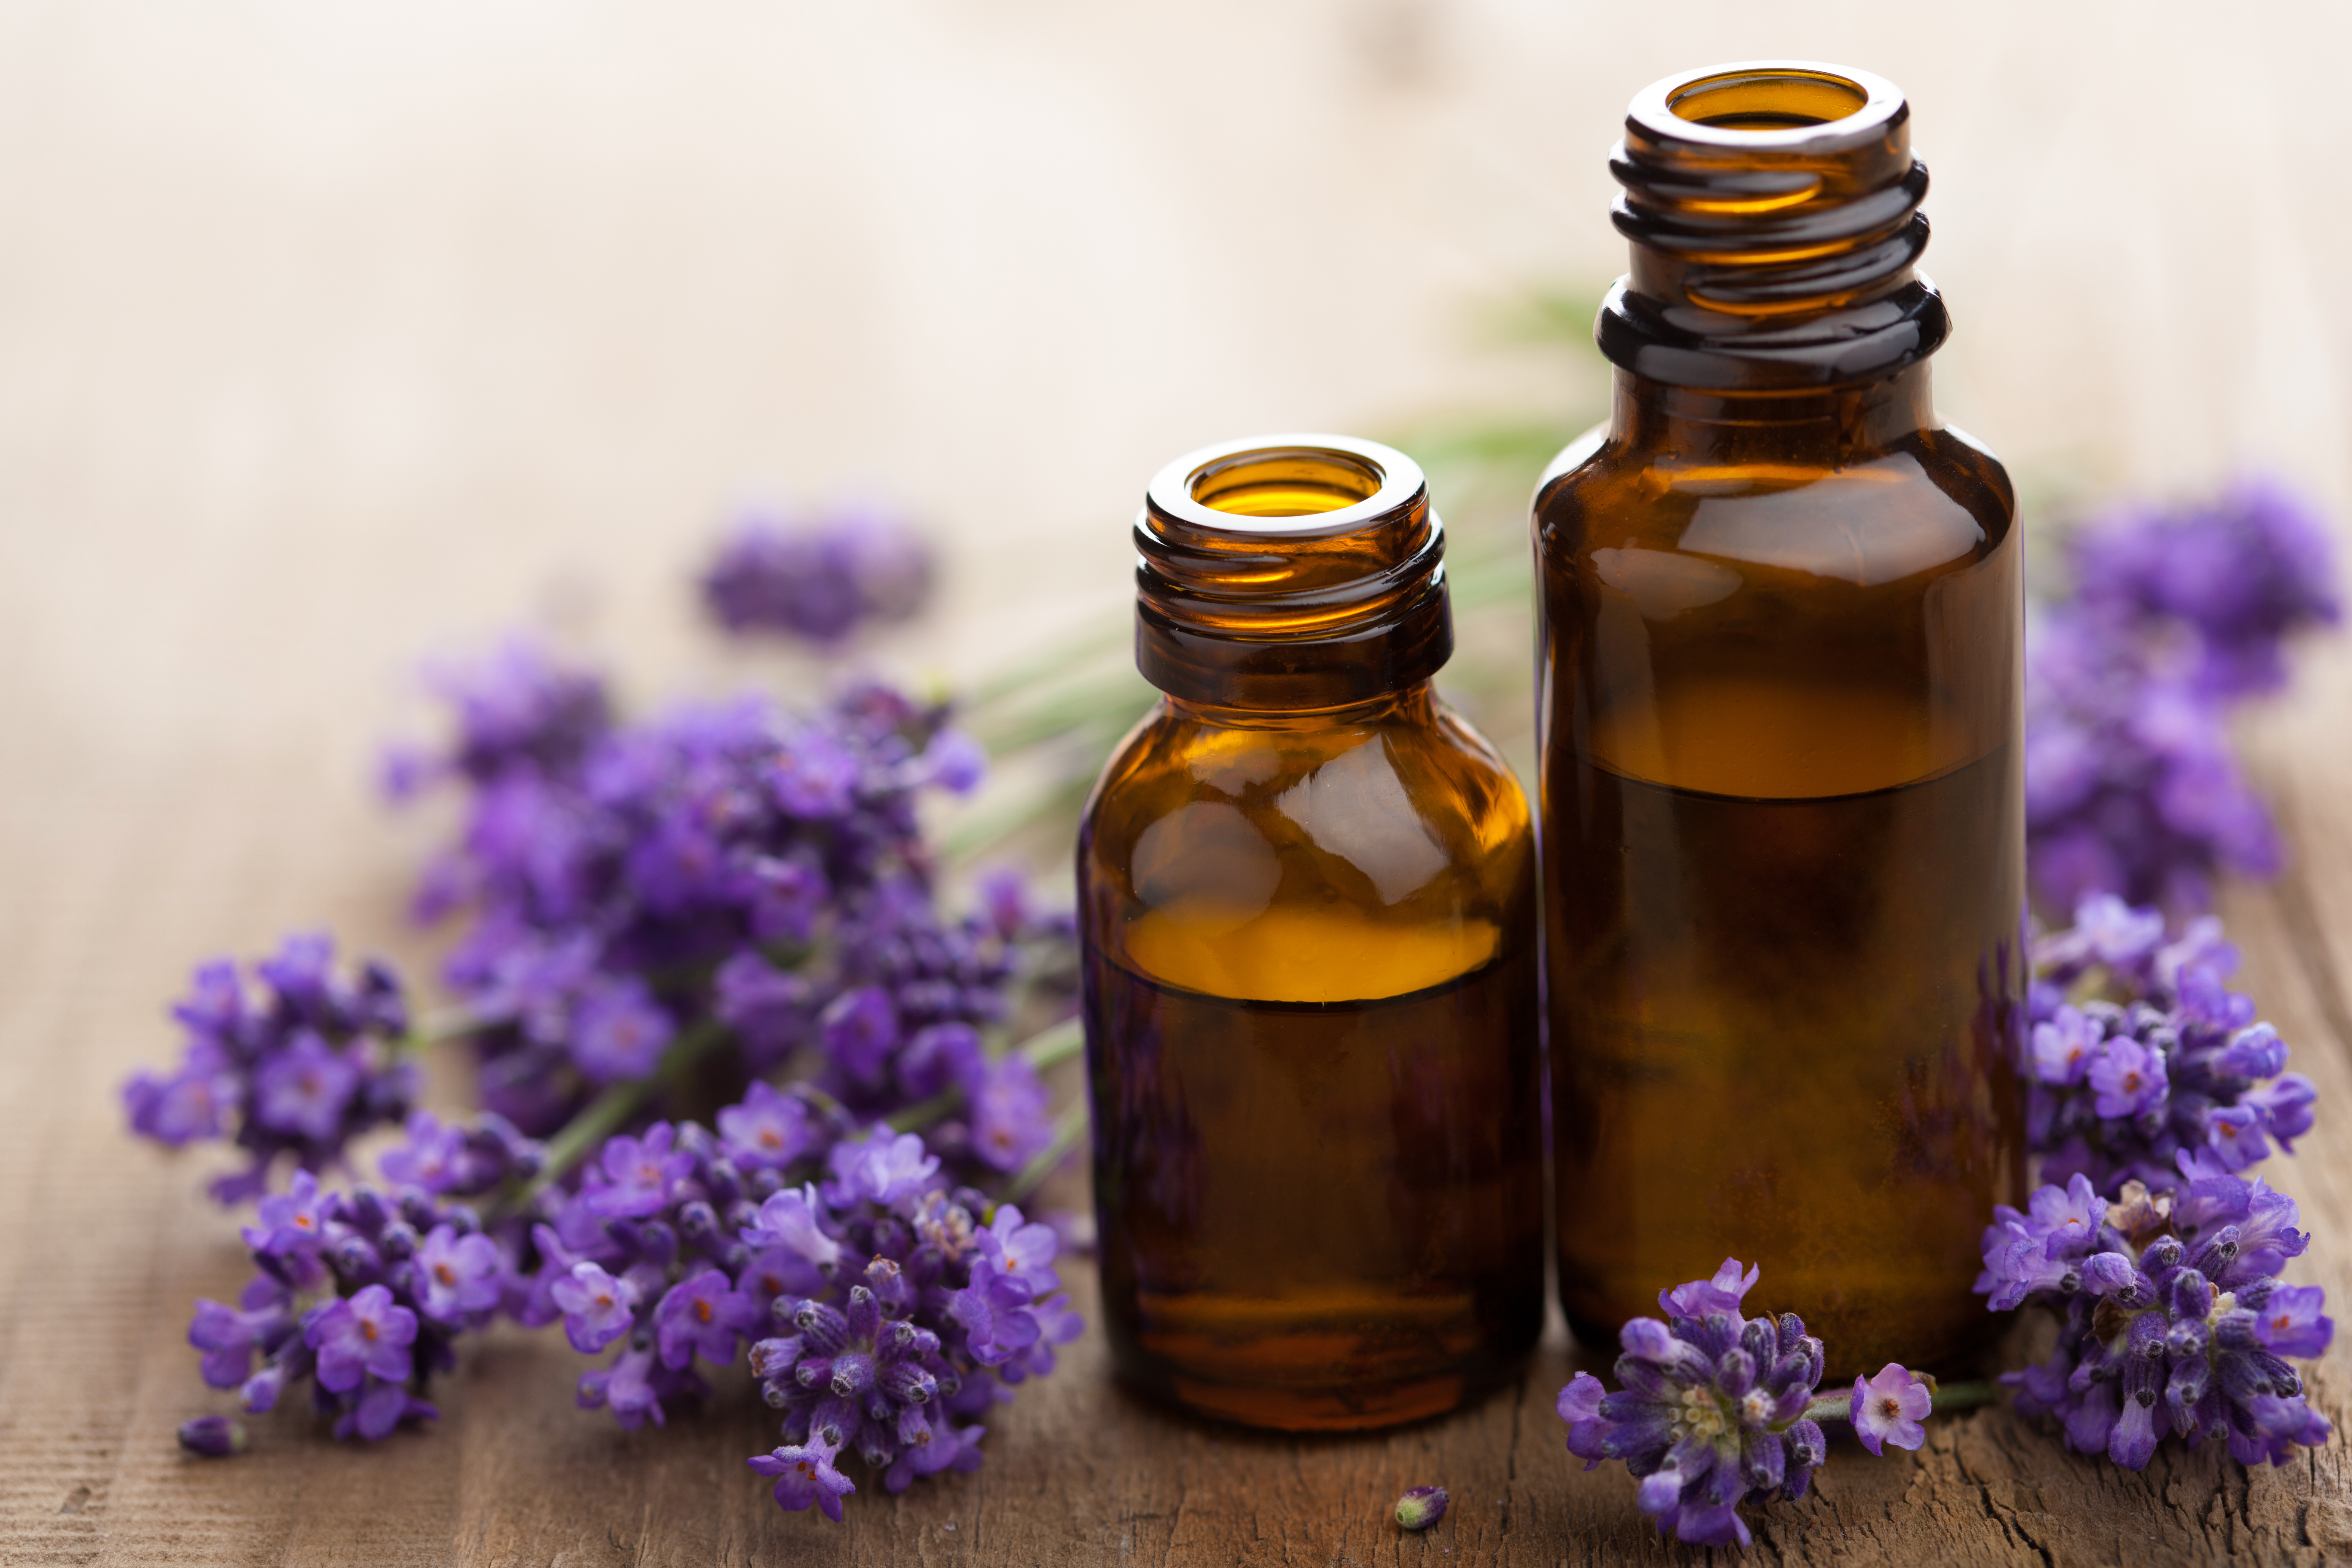 Essential oil compound may speed the healing of wounds